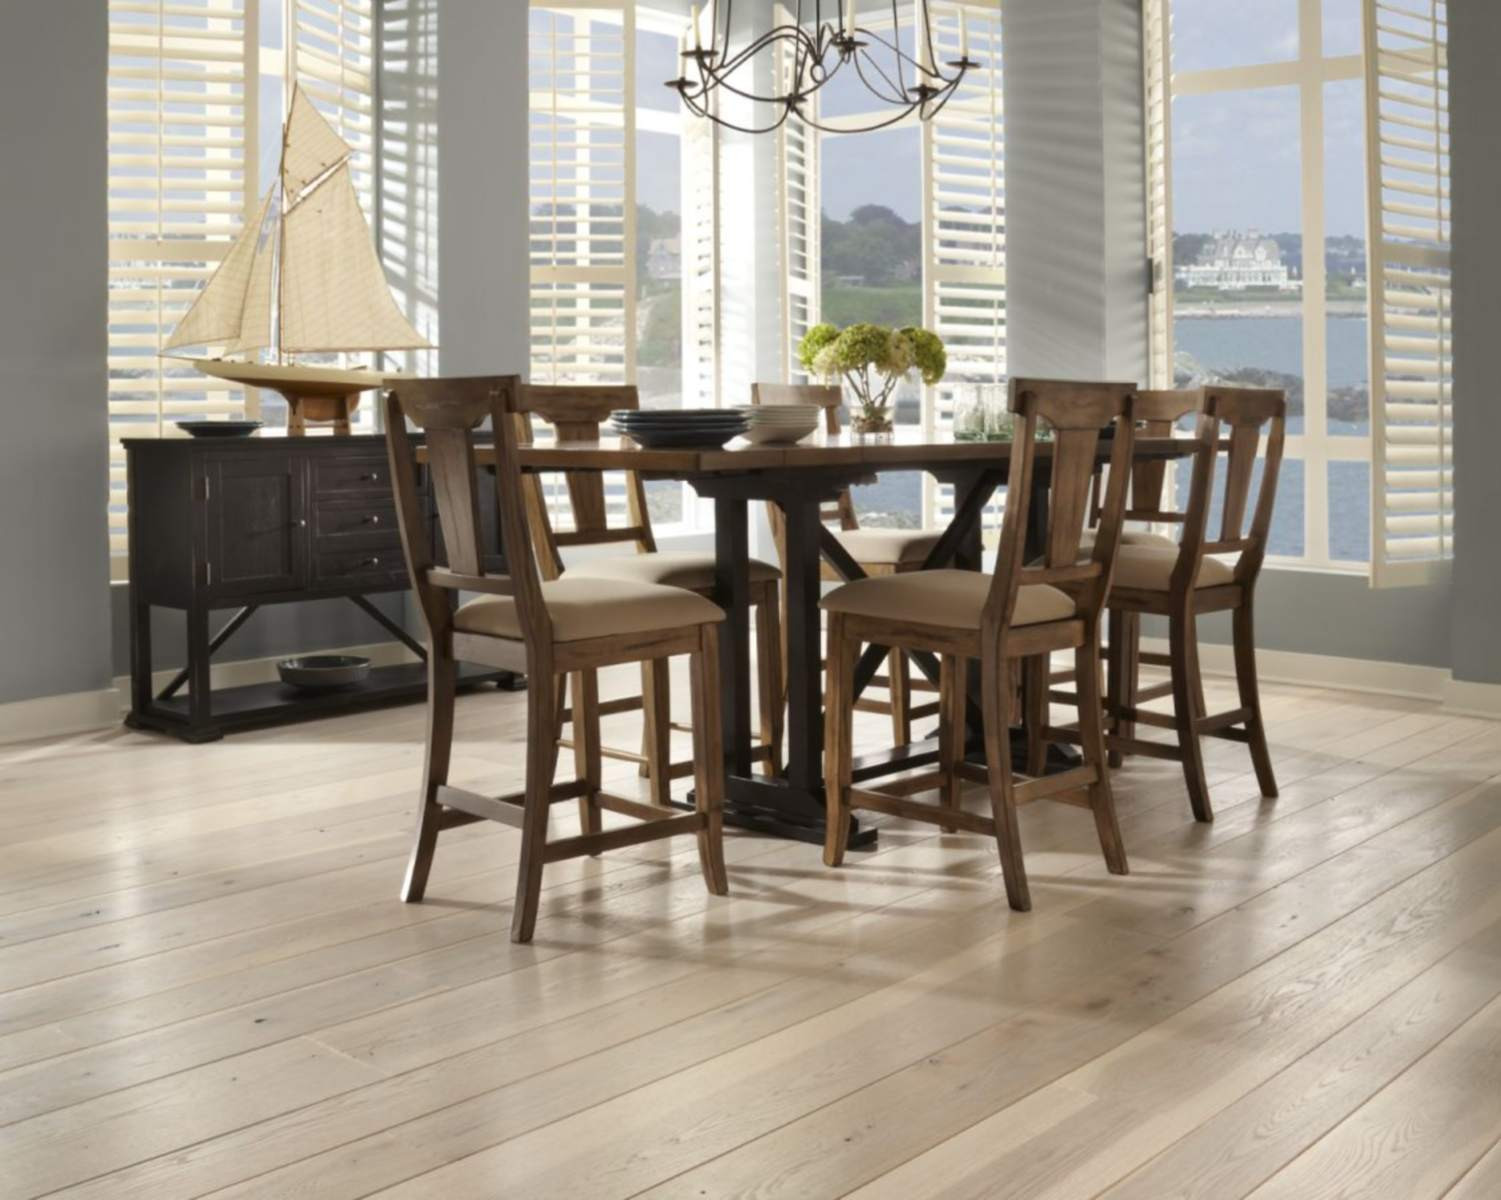 hardwood floor width sizes of top 5 brands for solid hardwood flooring intended for a dining room with carlisle hickorys wide plank flooring